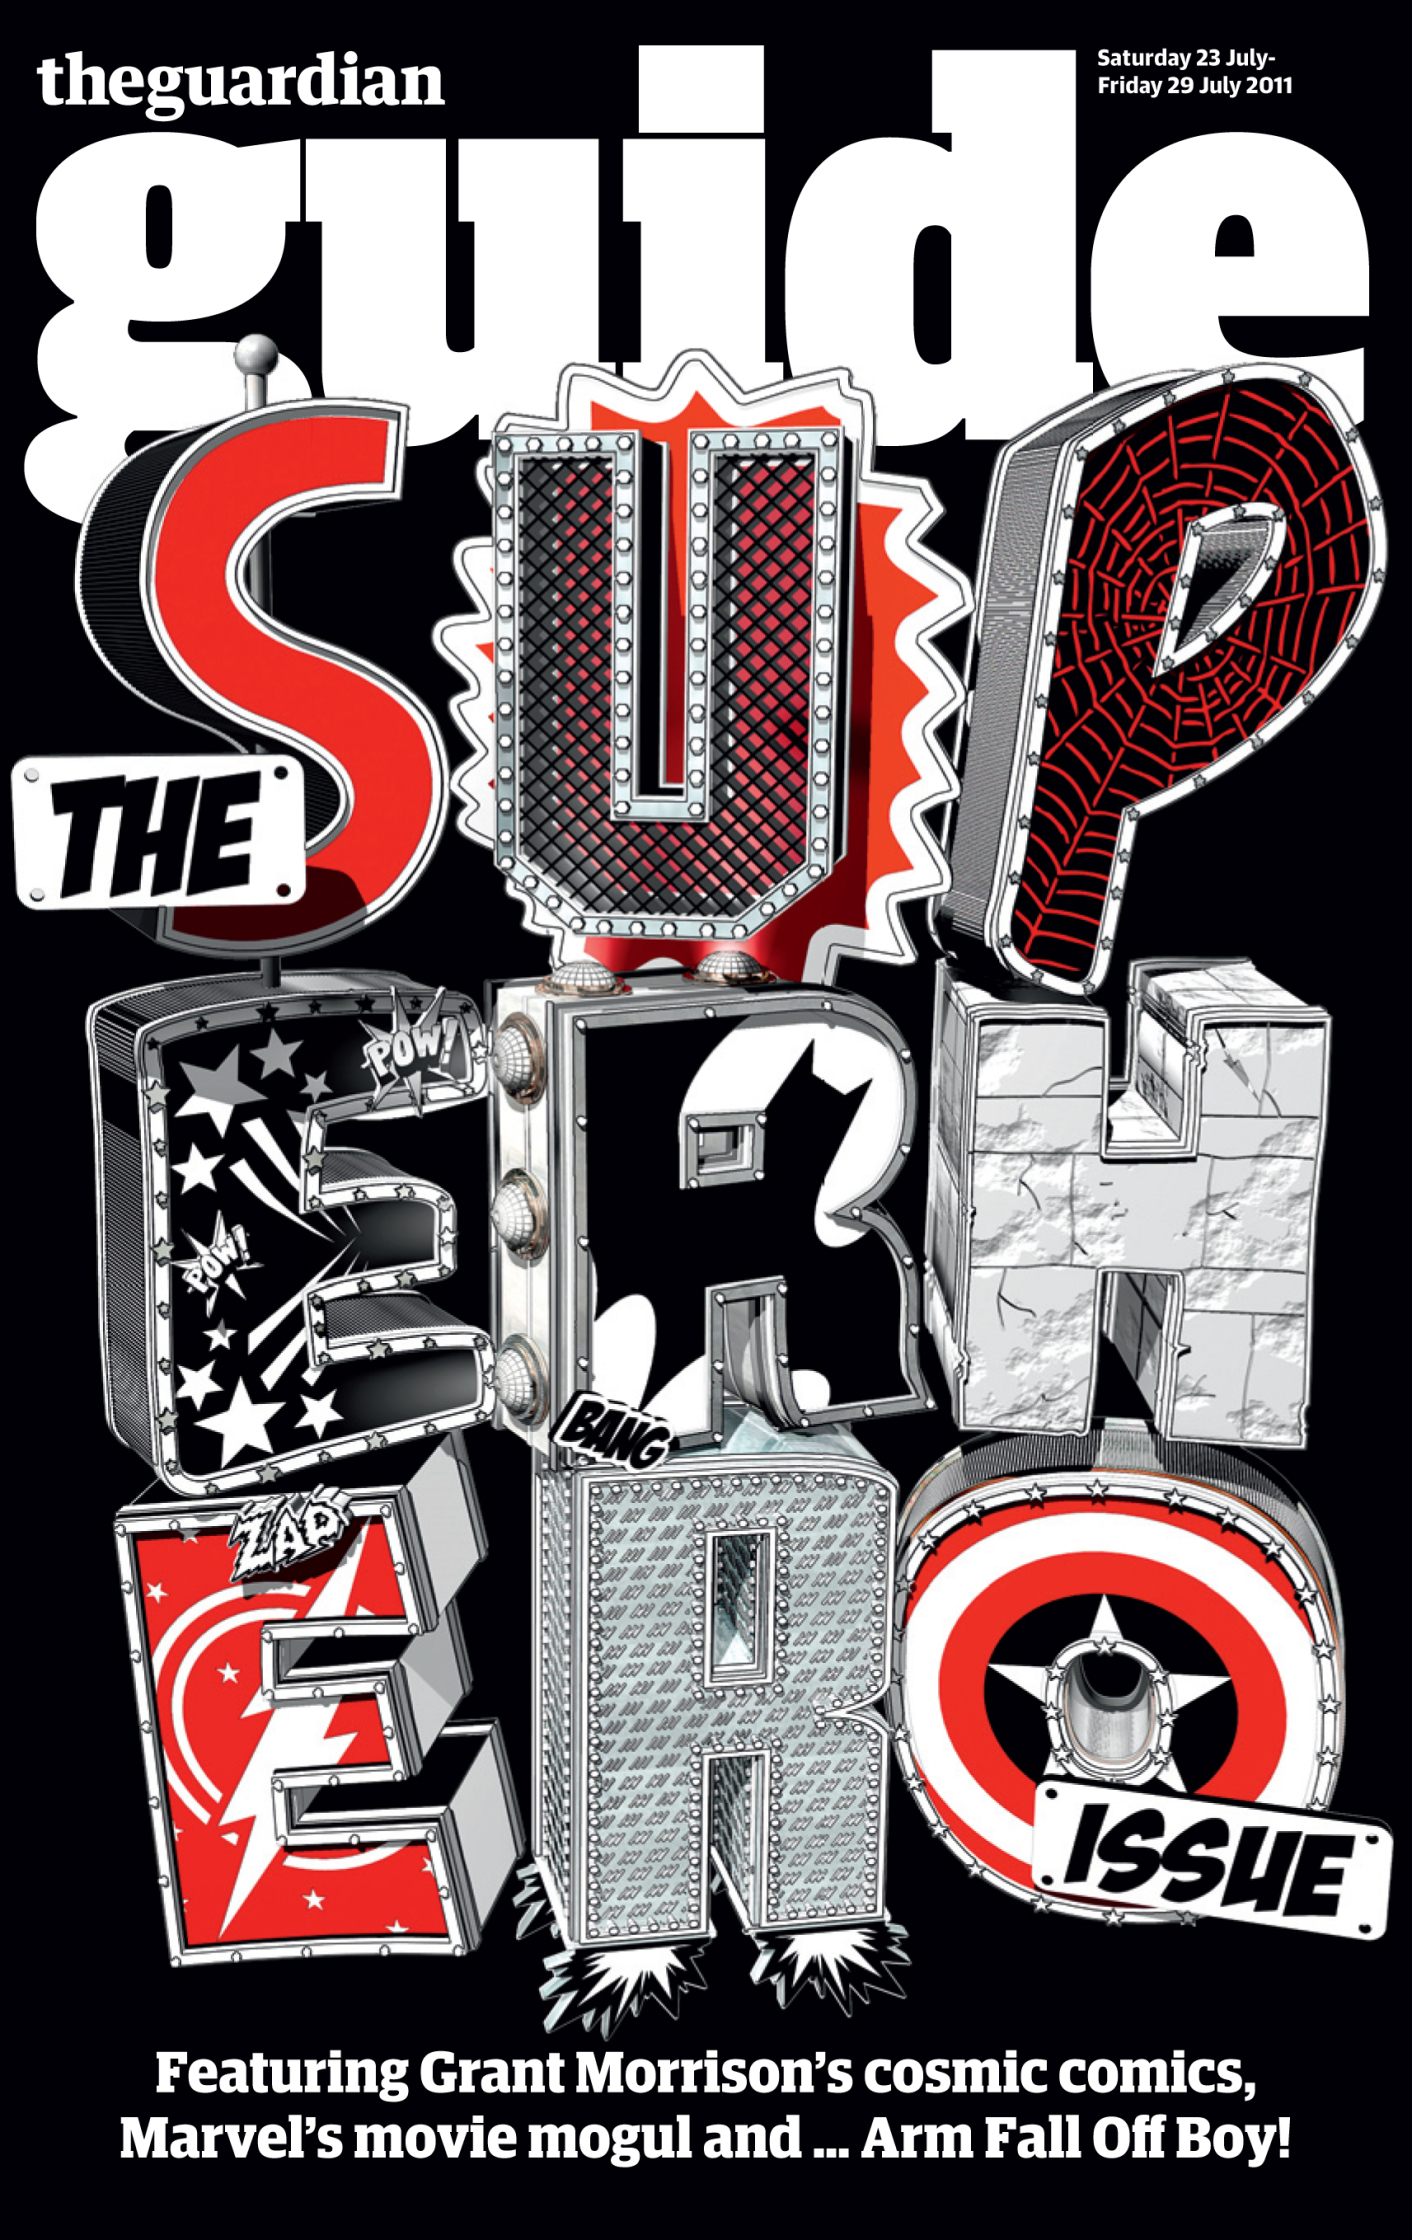 The Guide Superhero Issue